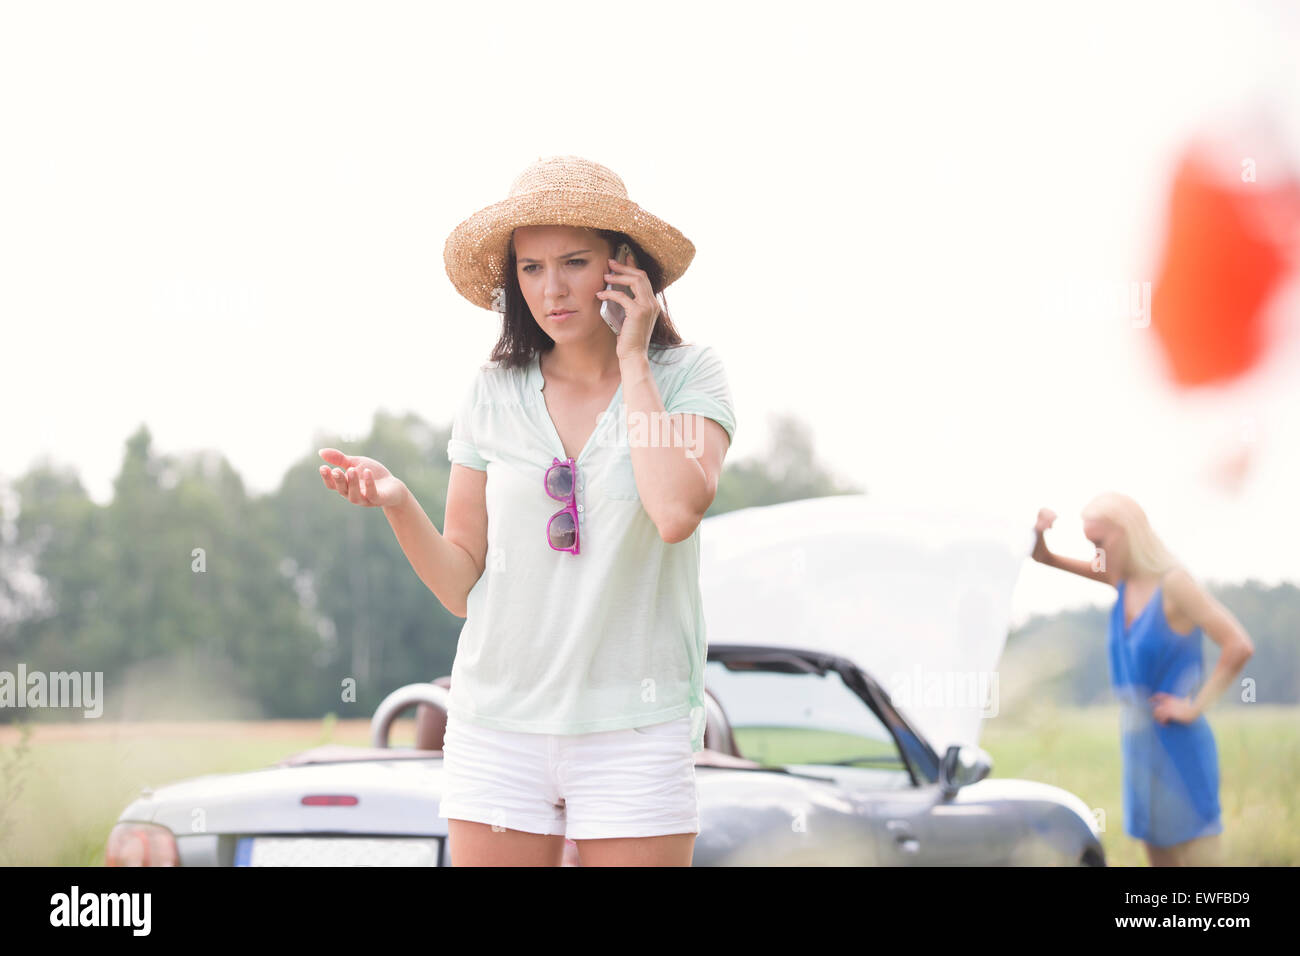 Worried woman using cell phone while friend examining broken down car outdoors - Stock Image